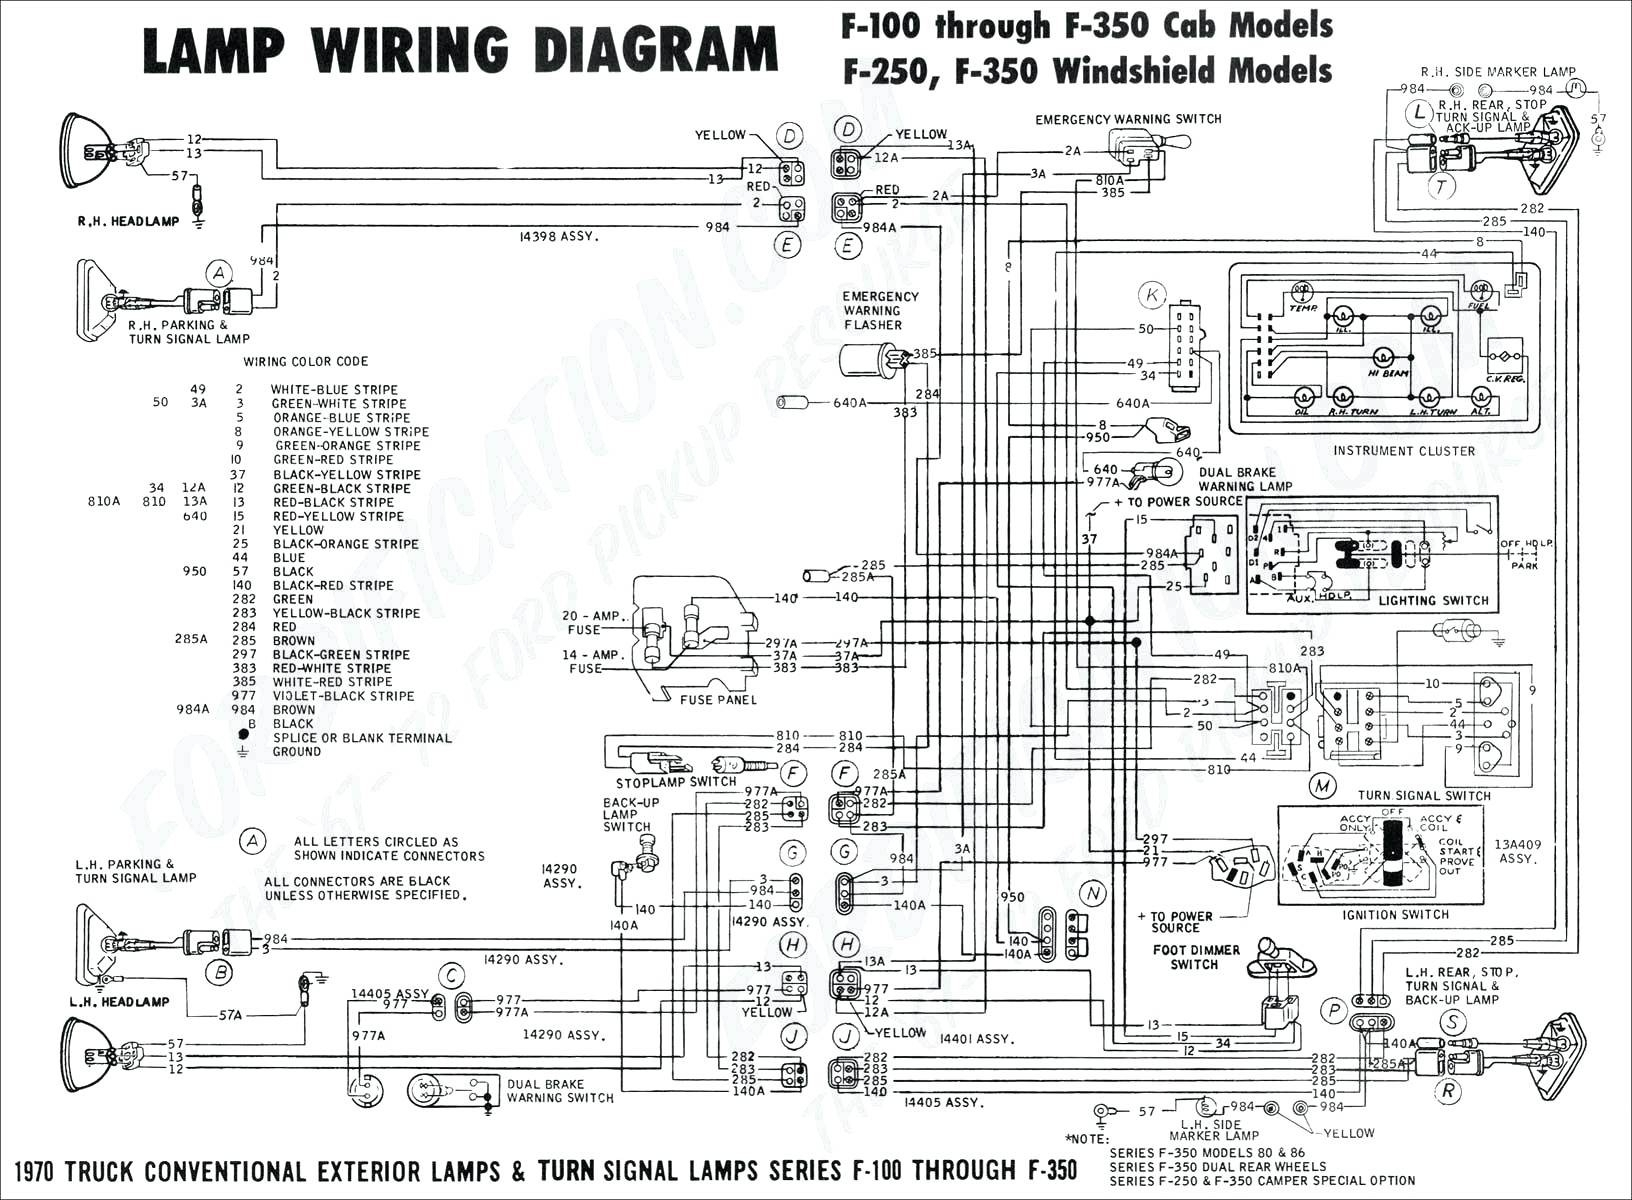 furnas esp100 wiring diagram Collection-Heartland Rv Wiring Diagram Collection Furnas Esp100 Wiring Diagram Image 3-j